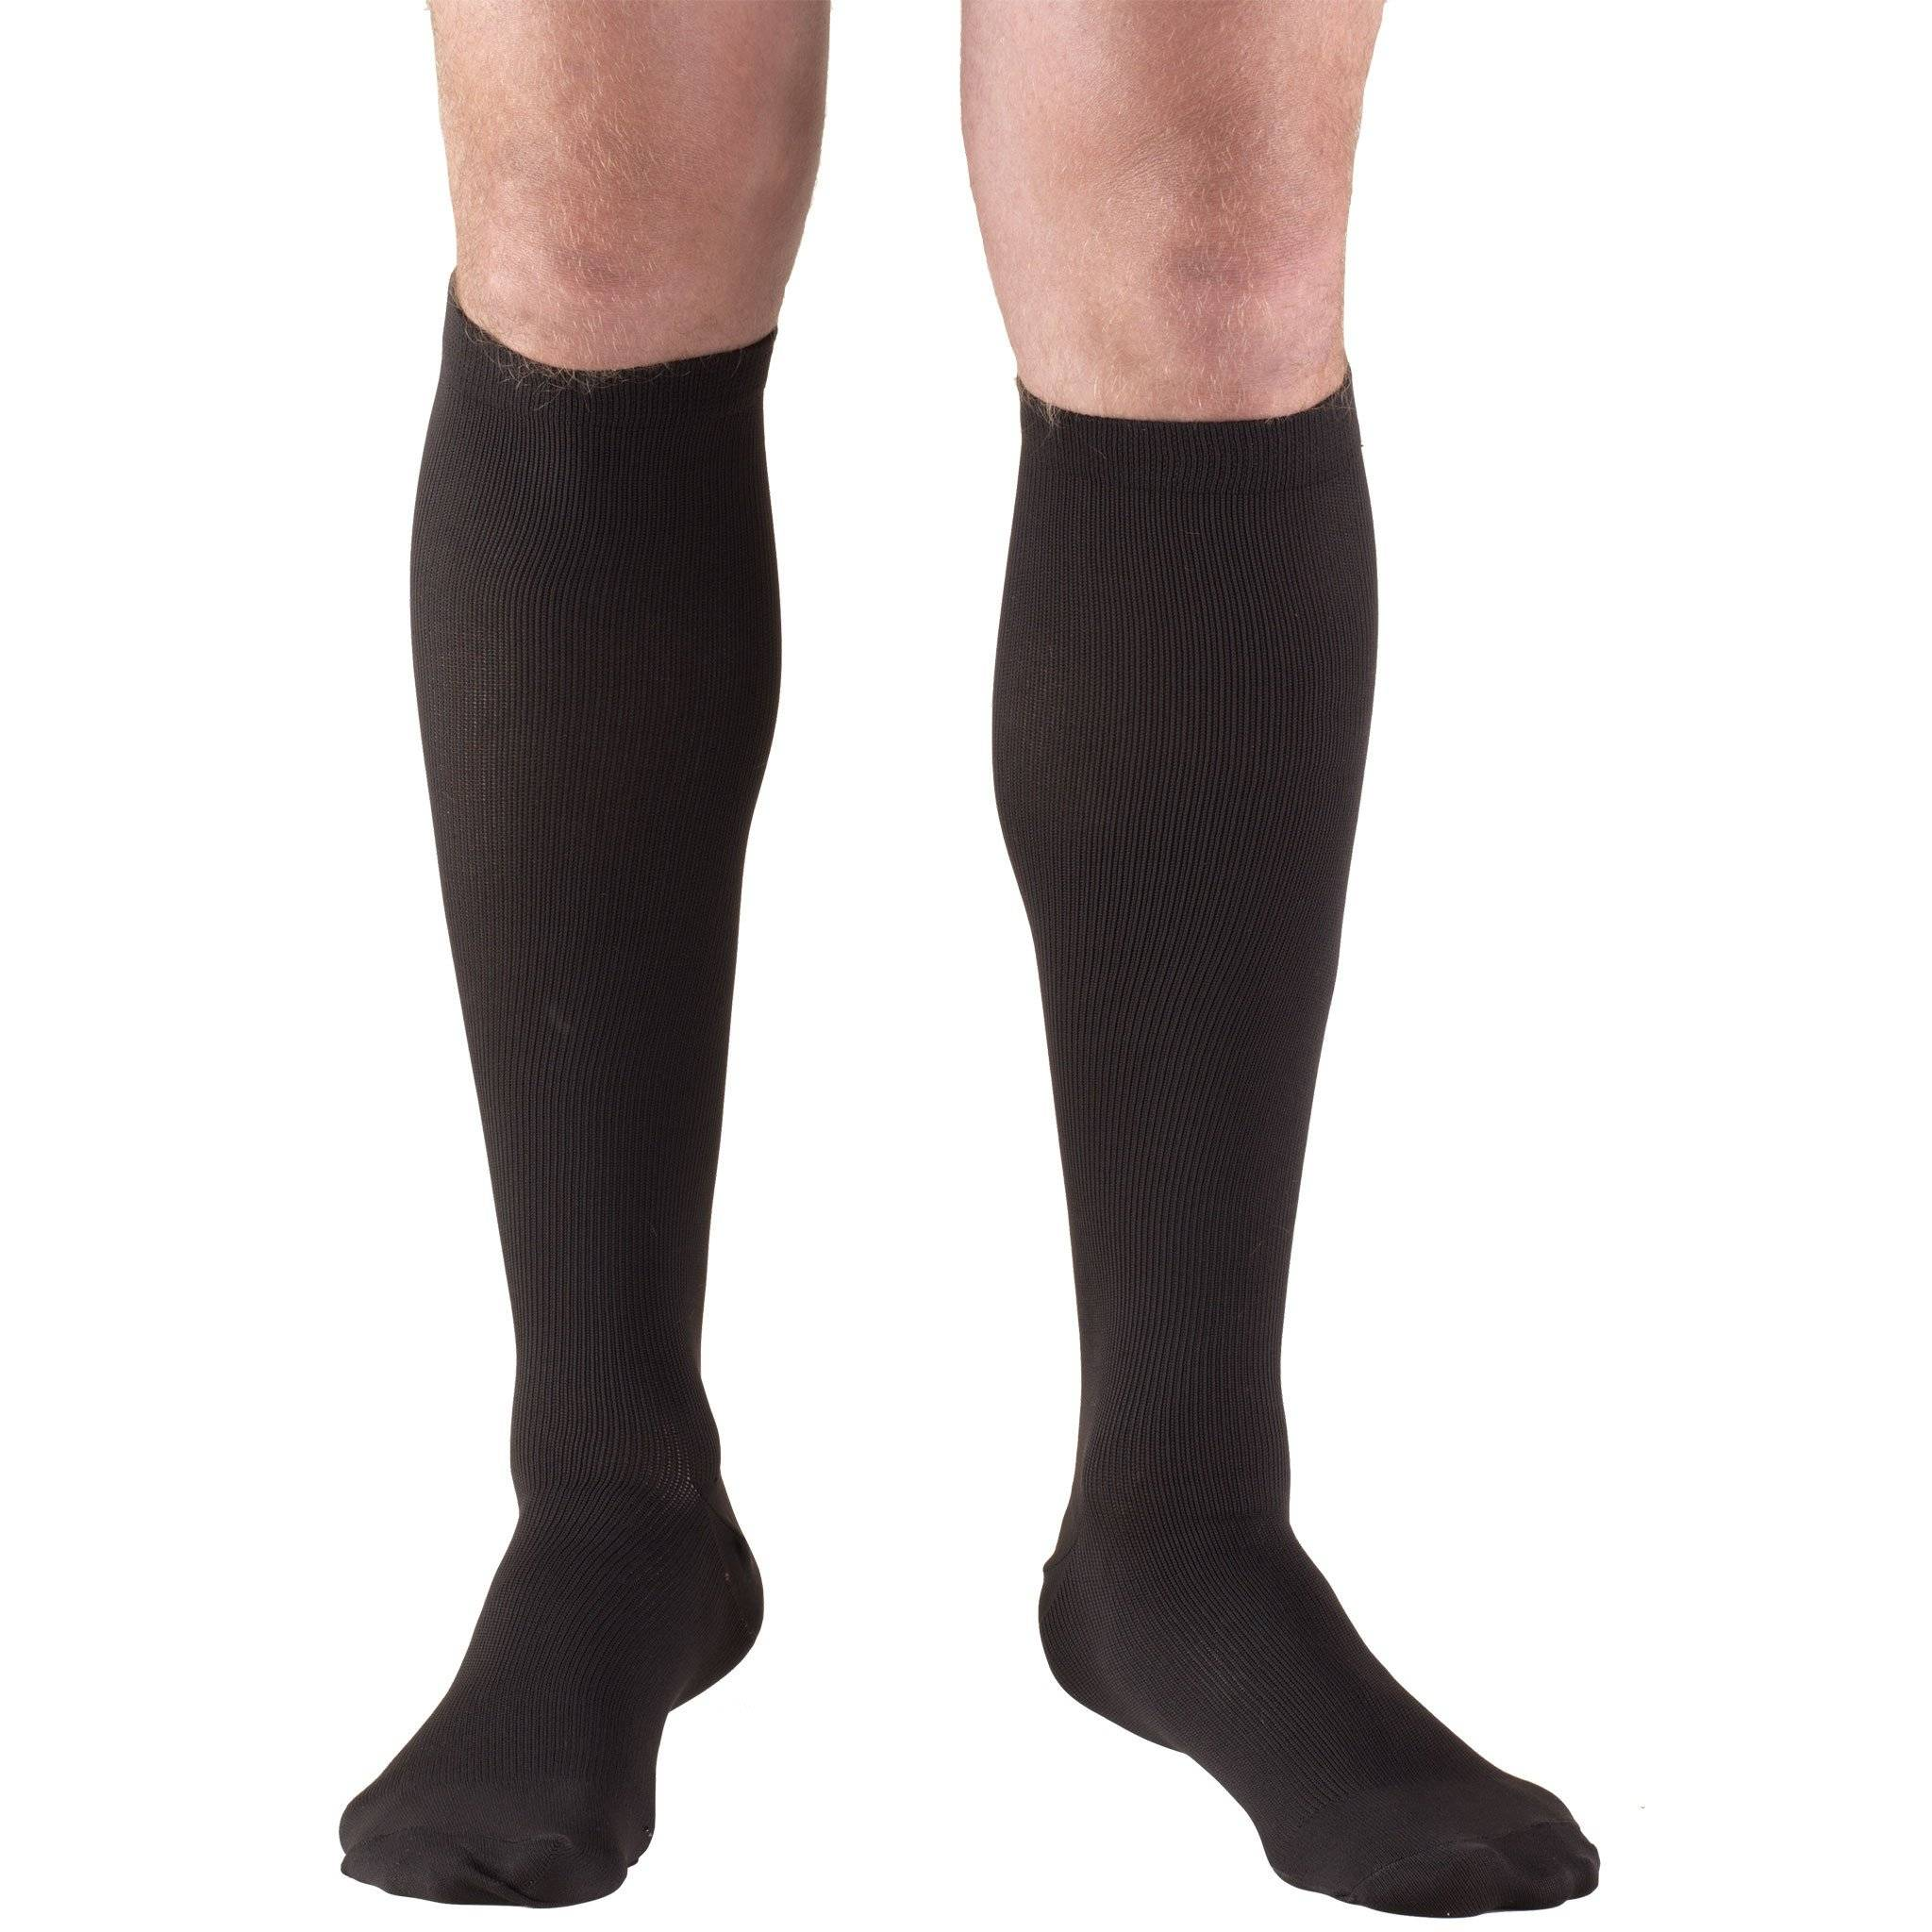 Knee High Men's Dress Socks